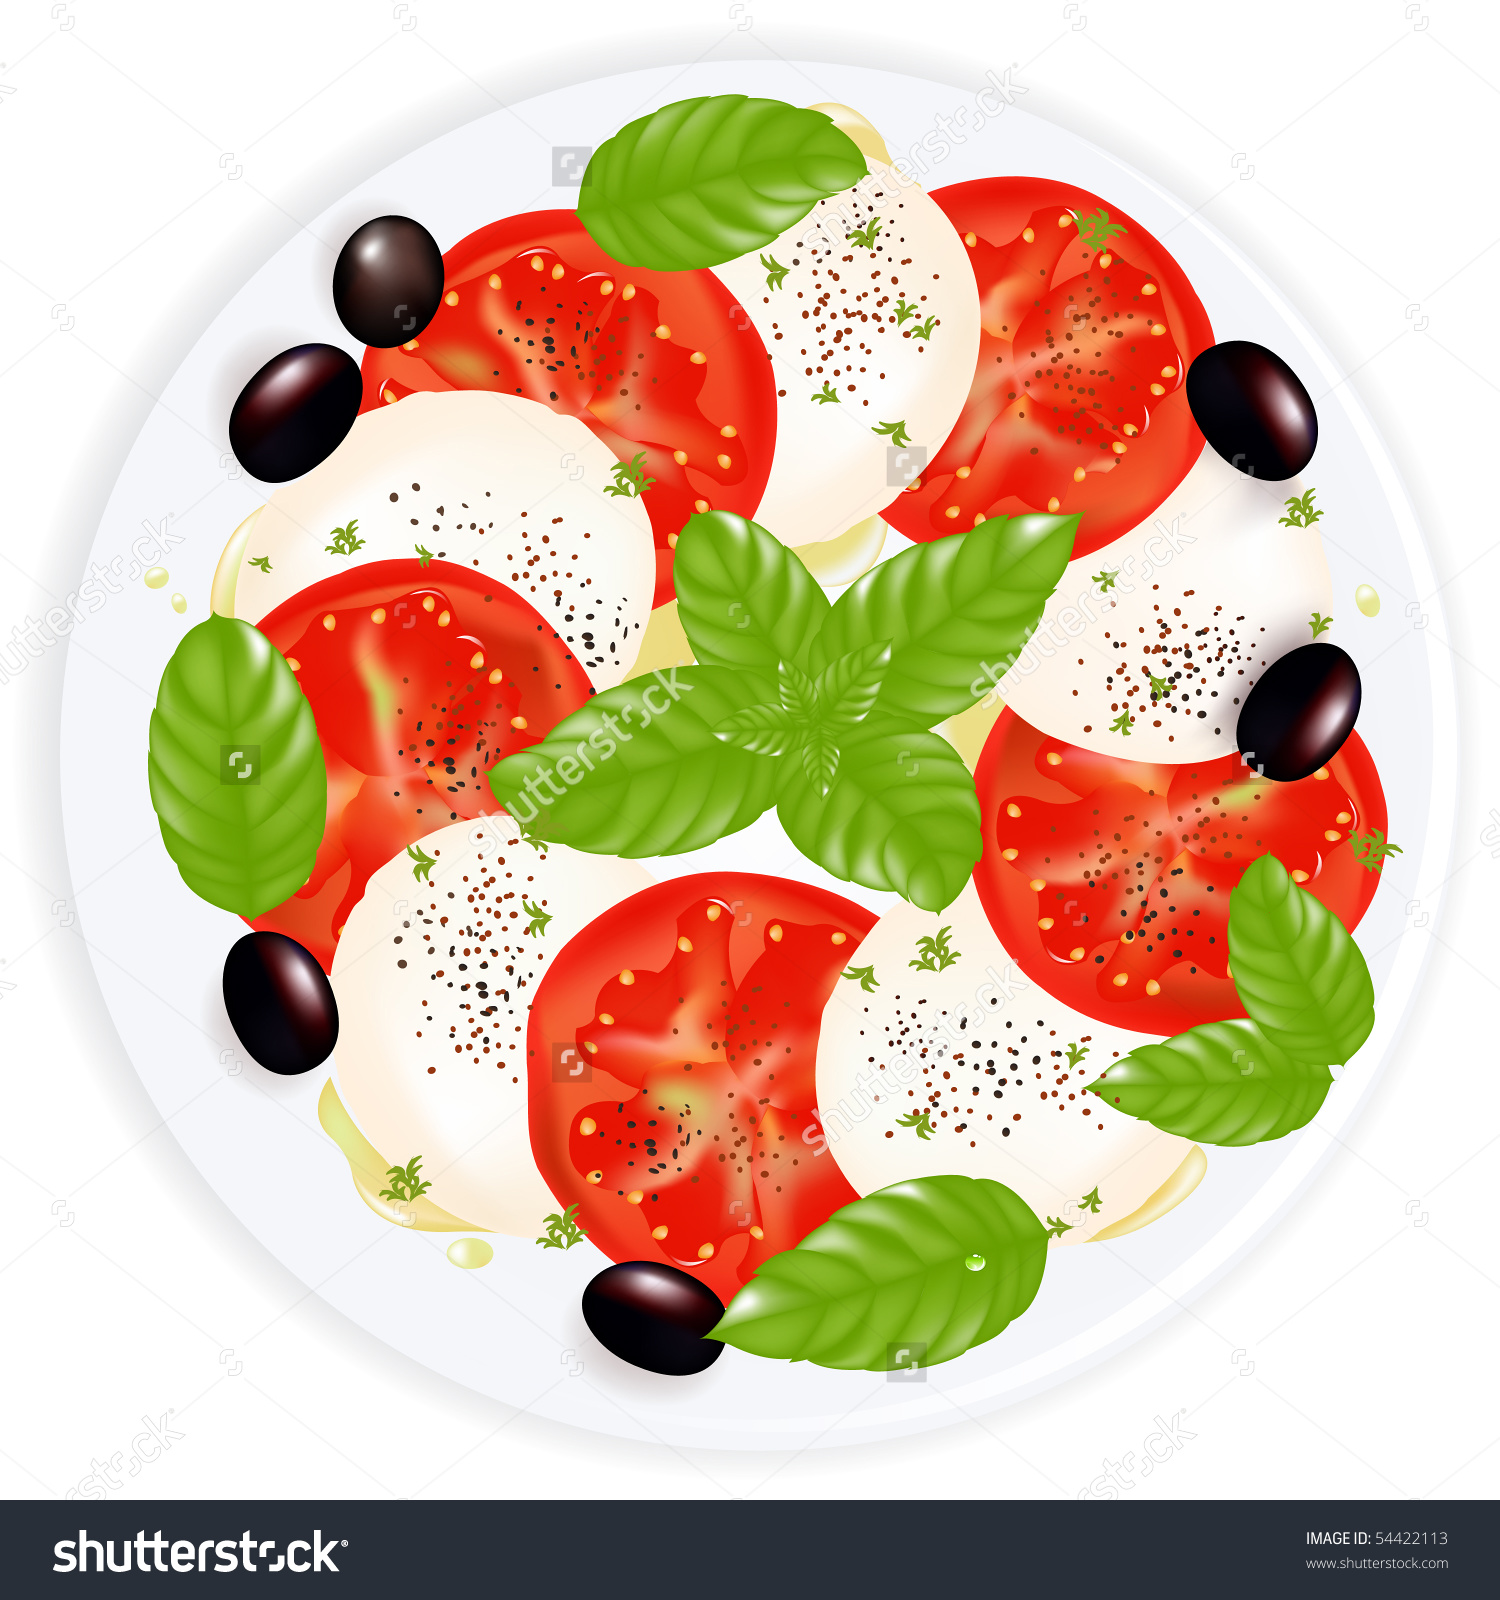 Caprese Salad Mozzarella Basil Black Olives Stock Vector 54422113.